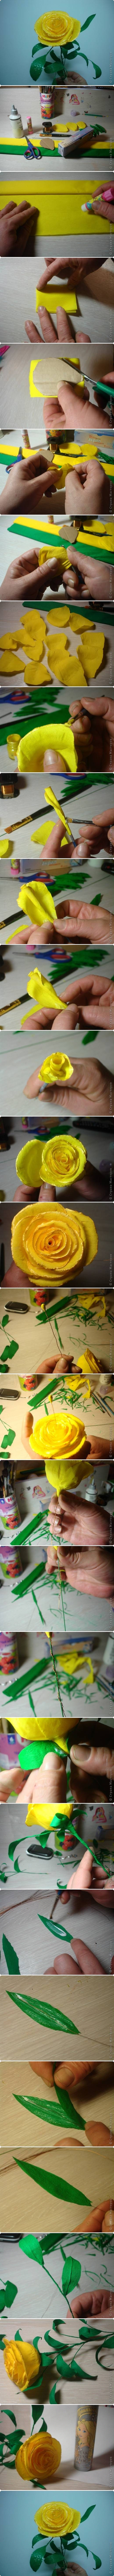 Diy beautiful yellow paper rose flowers diy crafts home made easy